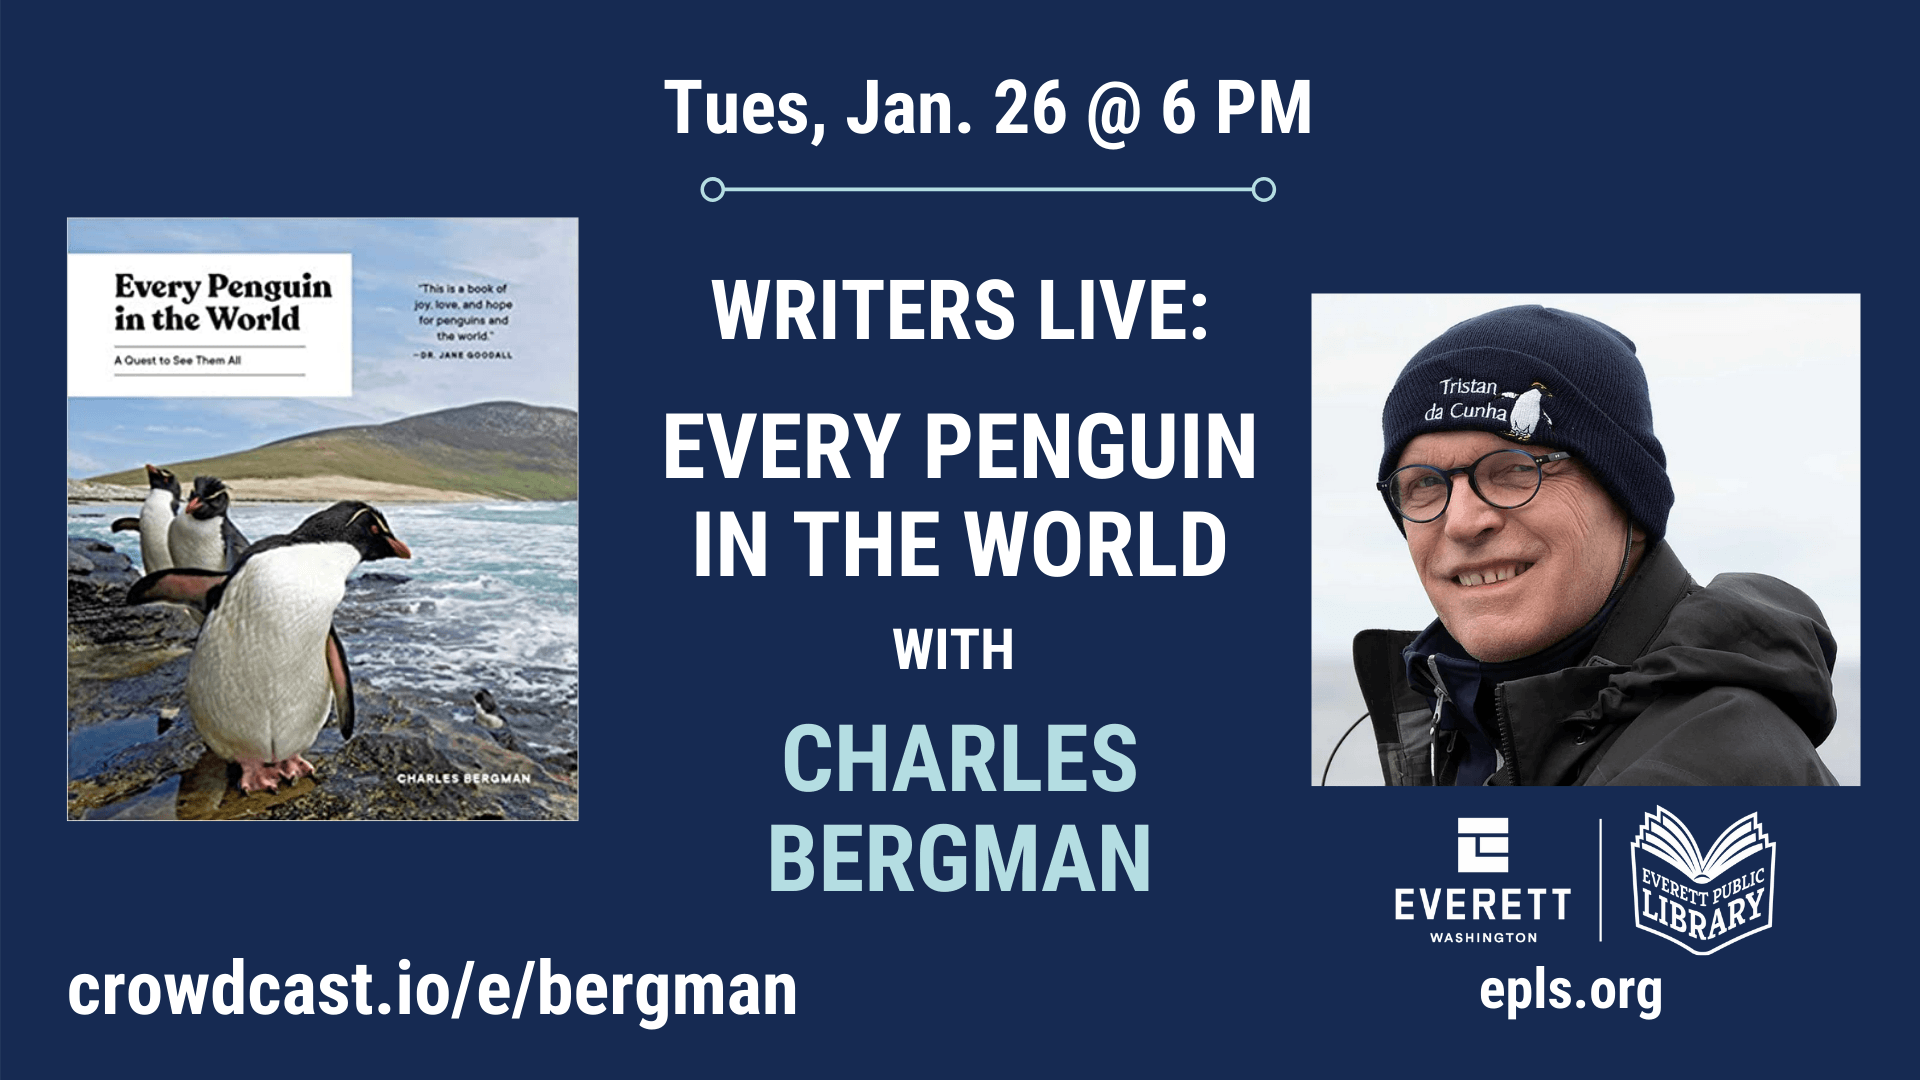 Graphic in navy with photo of author and photo of penguins, along with program details,